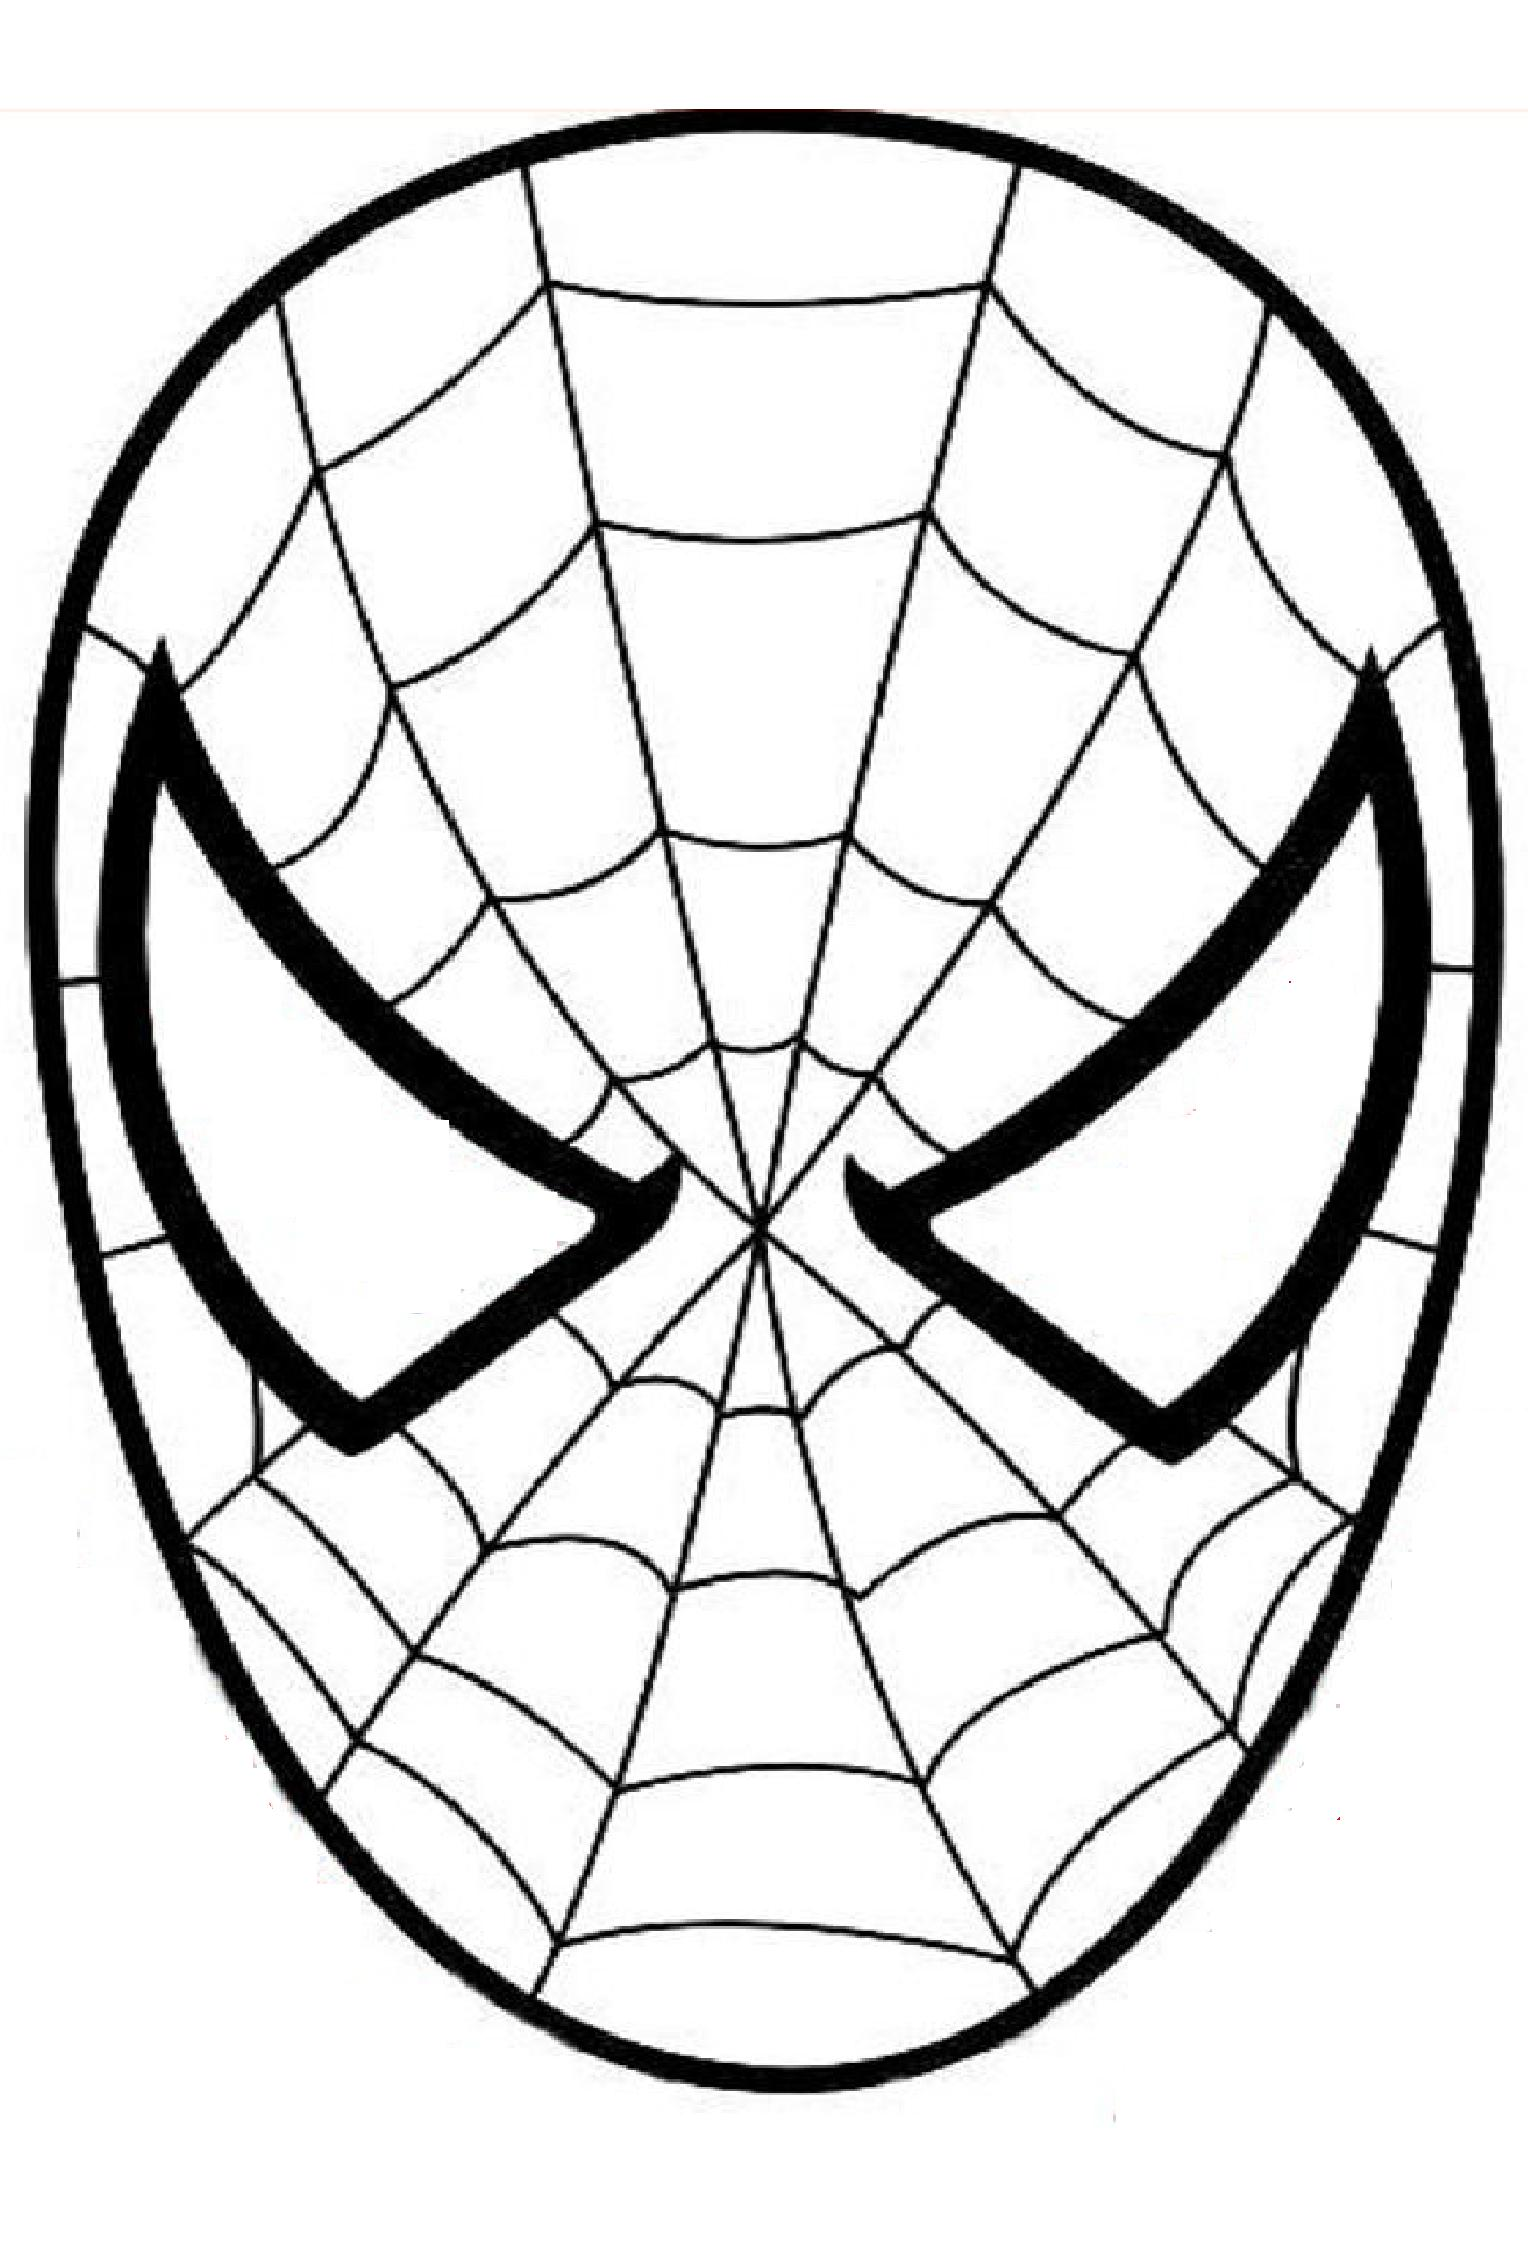 coloring pictures of spiderman spiderman free to color for children spiderman kids pictures coloring of spiderman